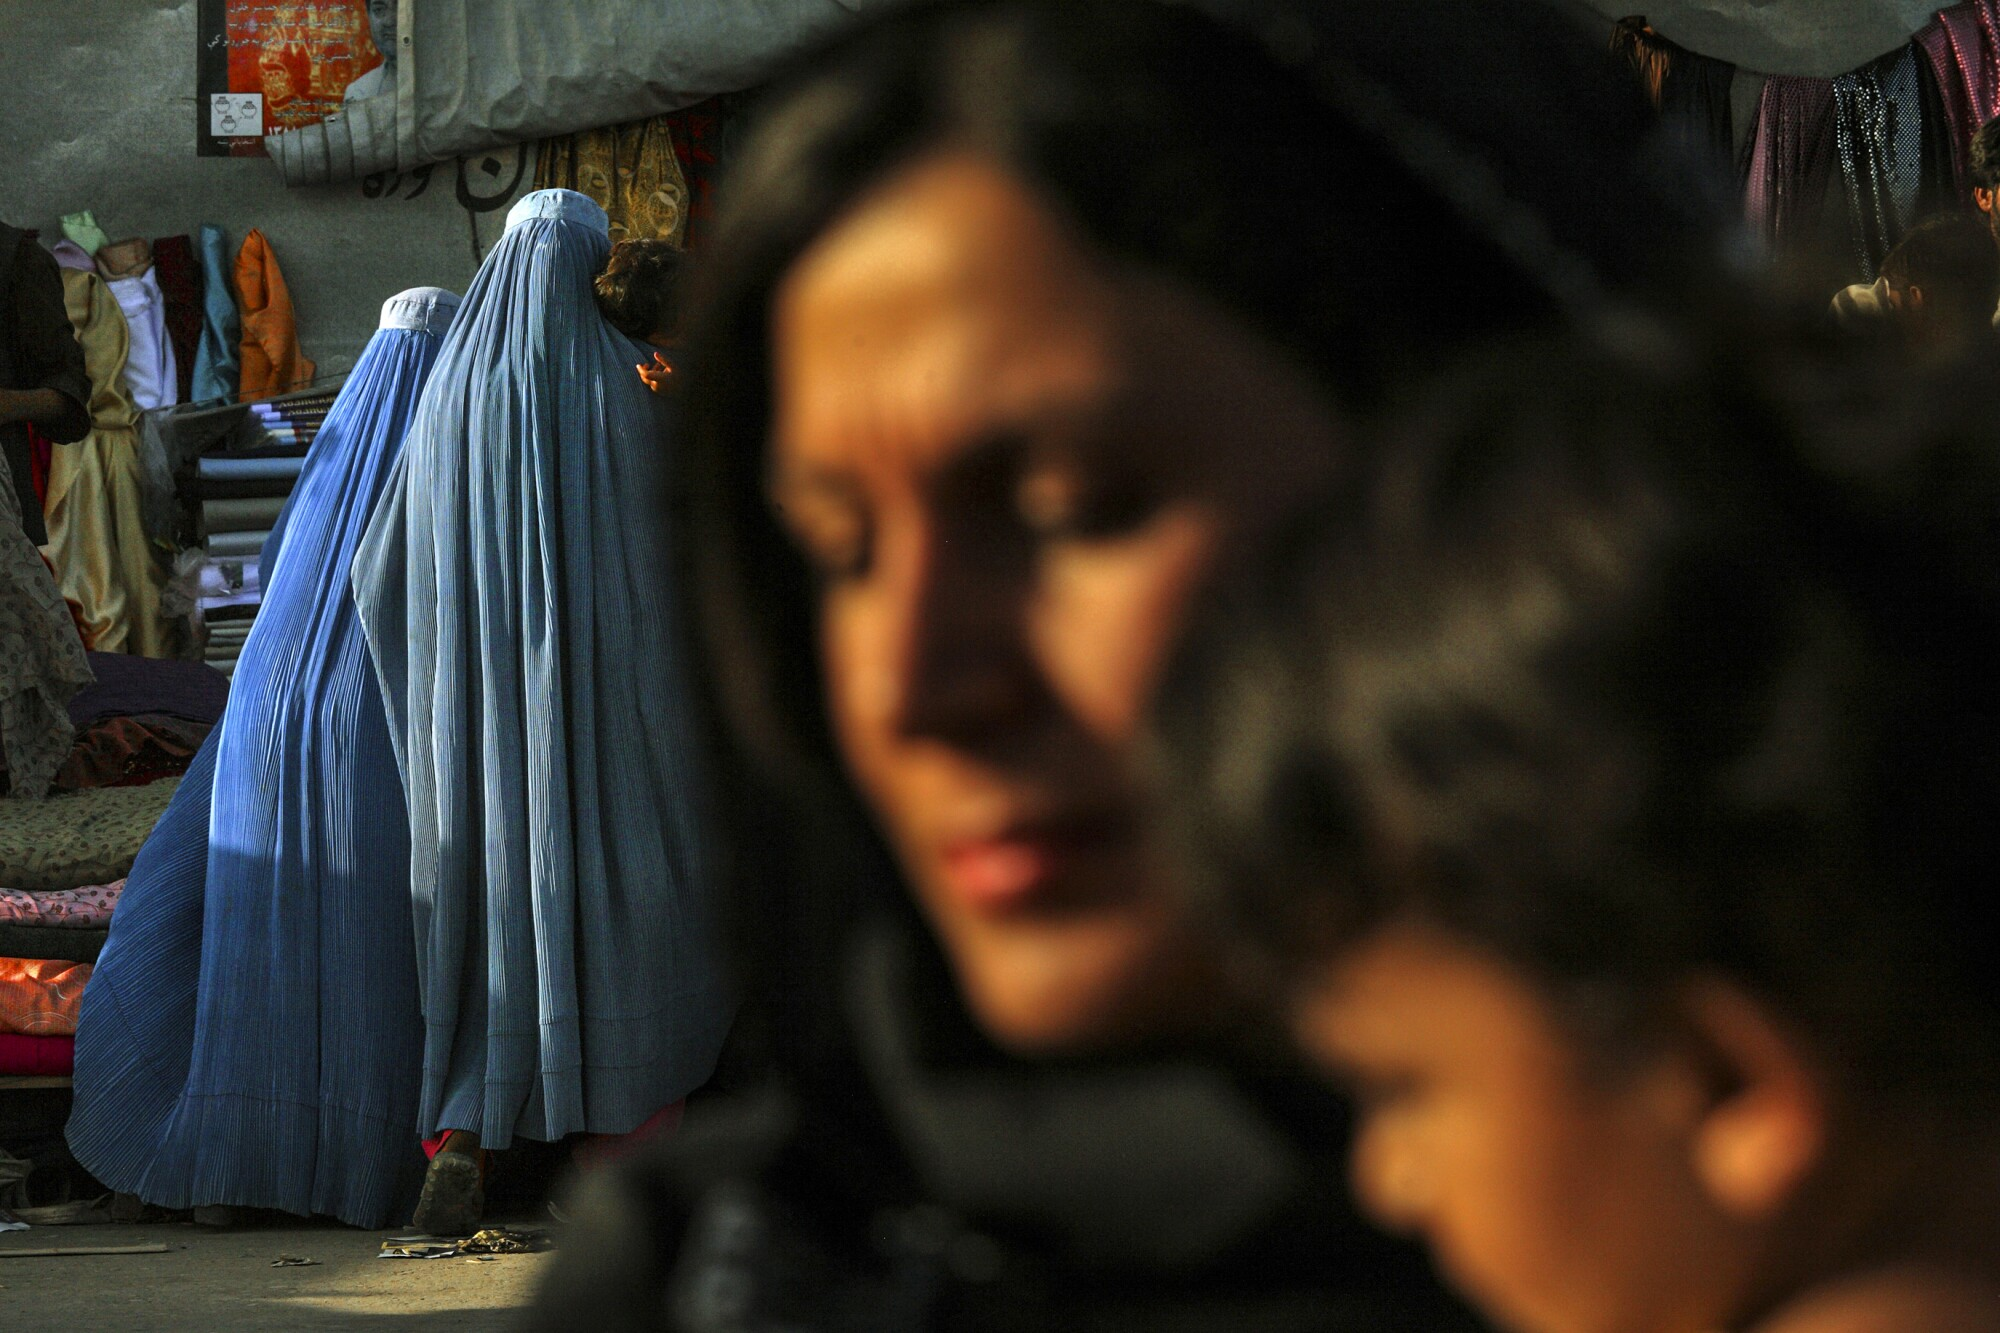 Life for the women of Afghanistan has changed dramatically since the fall of the Taliban in 2001.